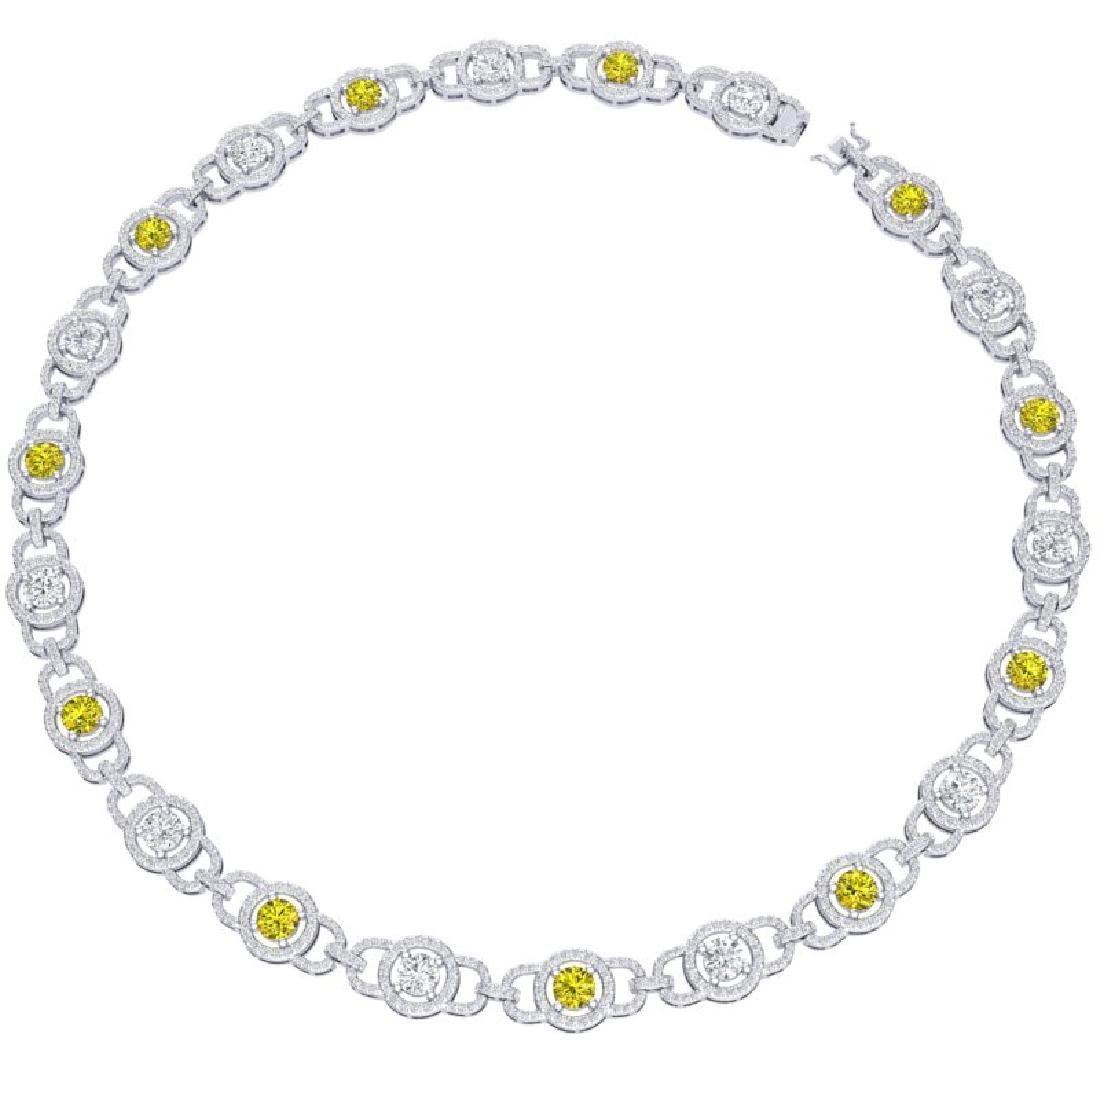 25 CTW SI/I Fancy Yellow And White Diamond Necklace 18K - 3